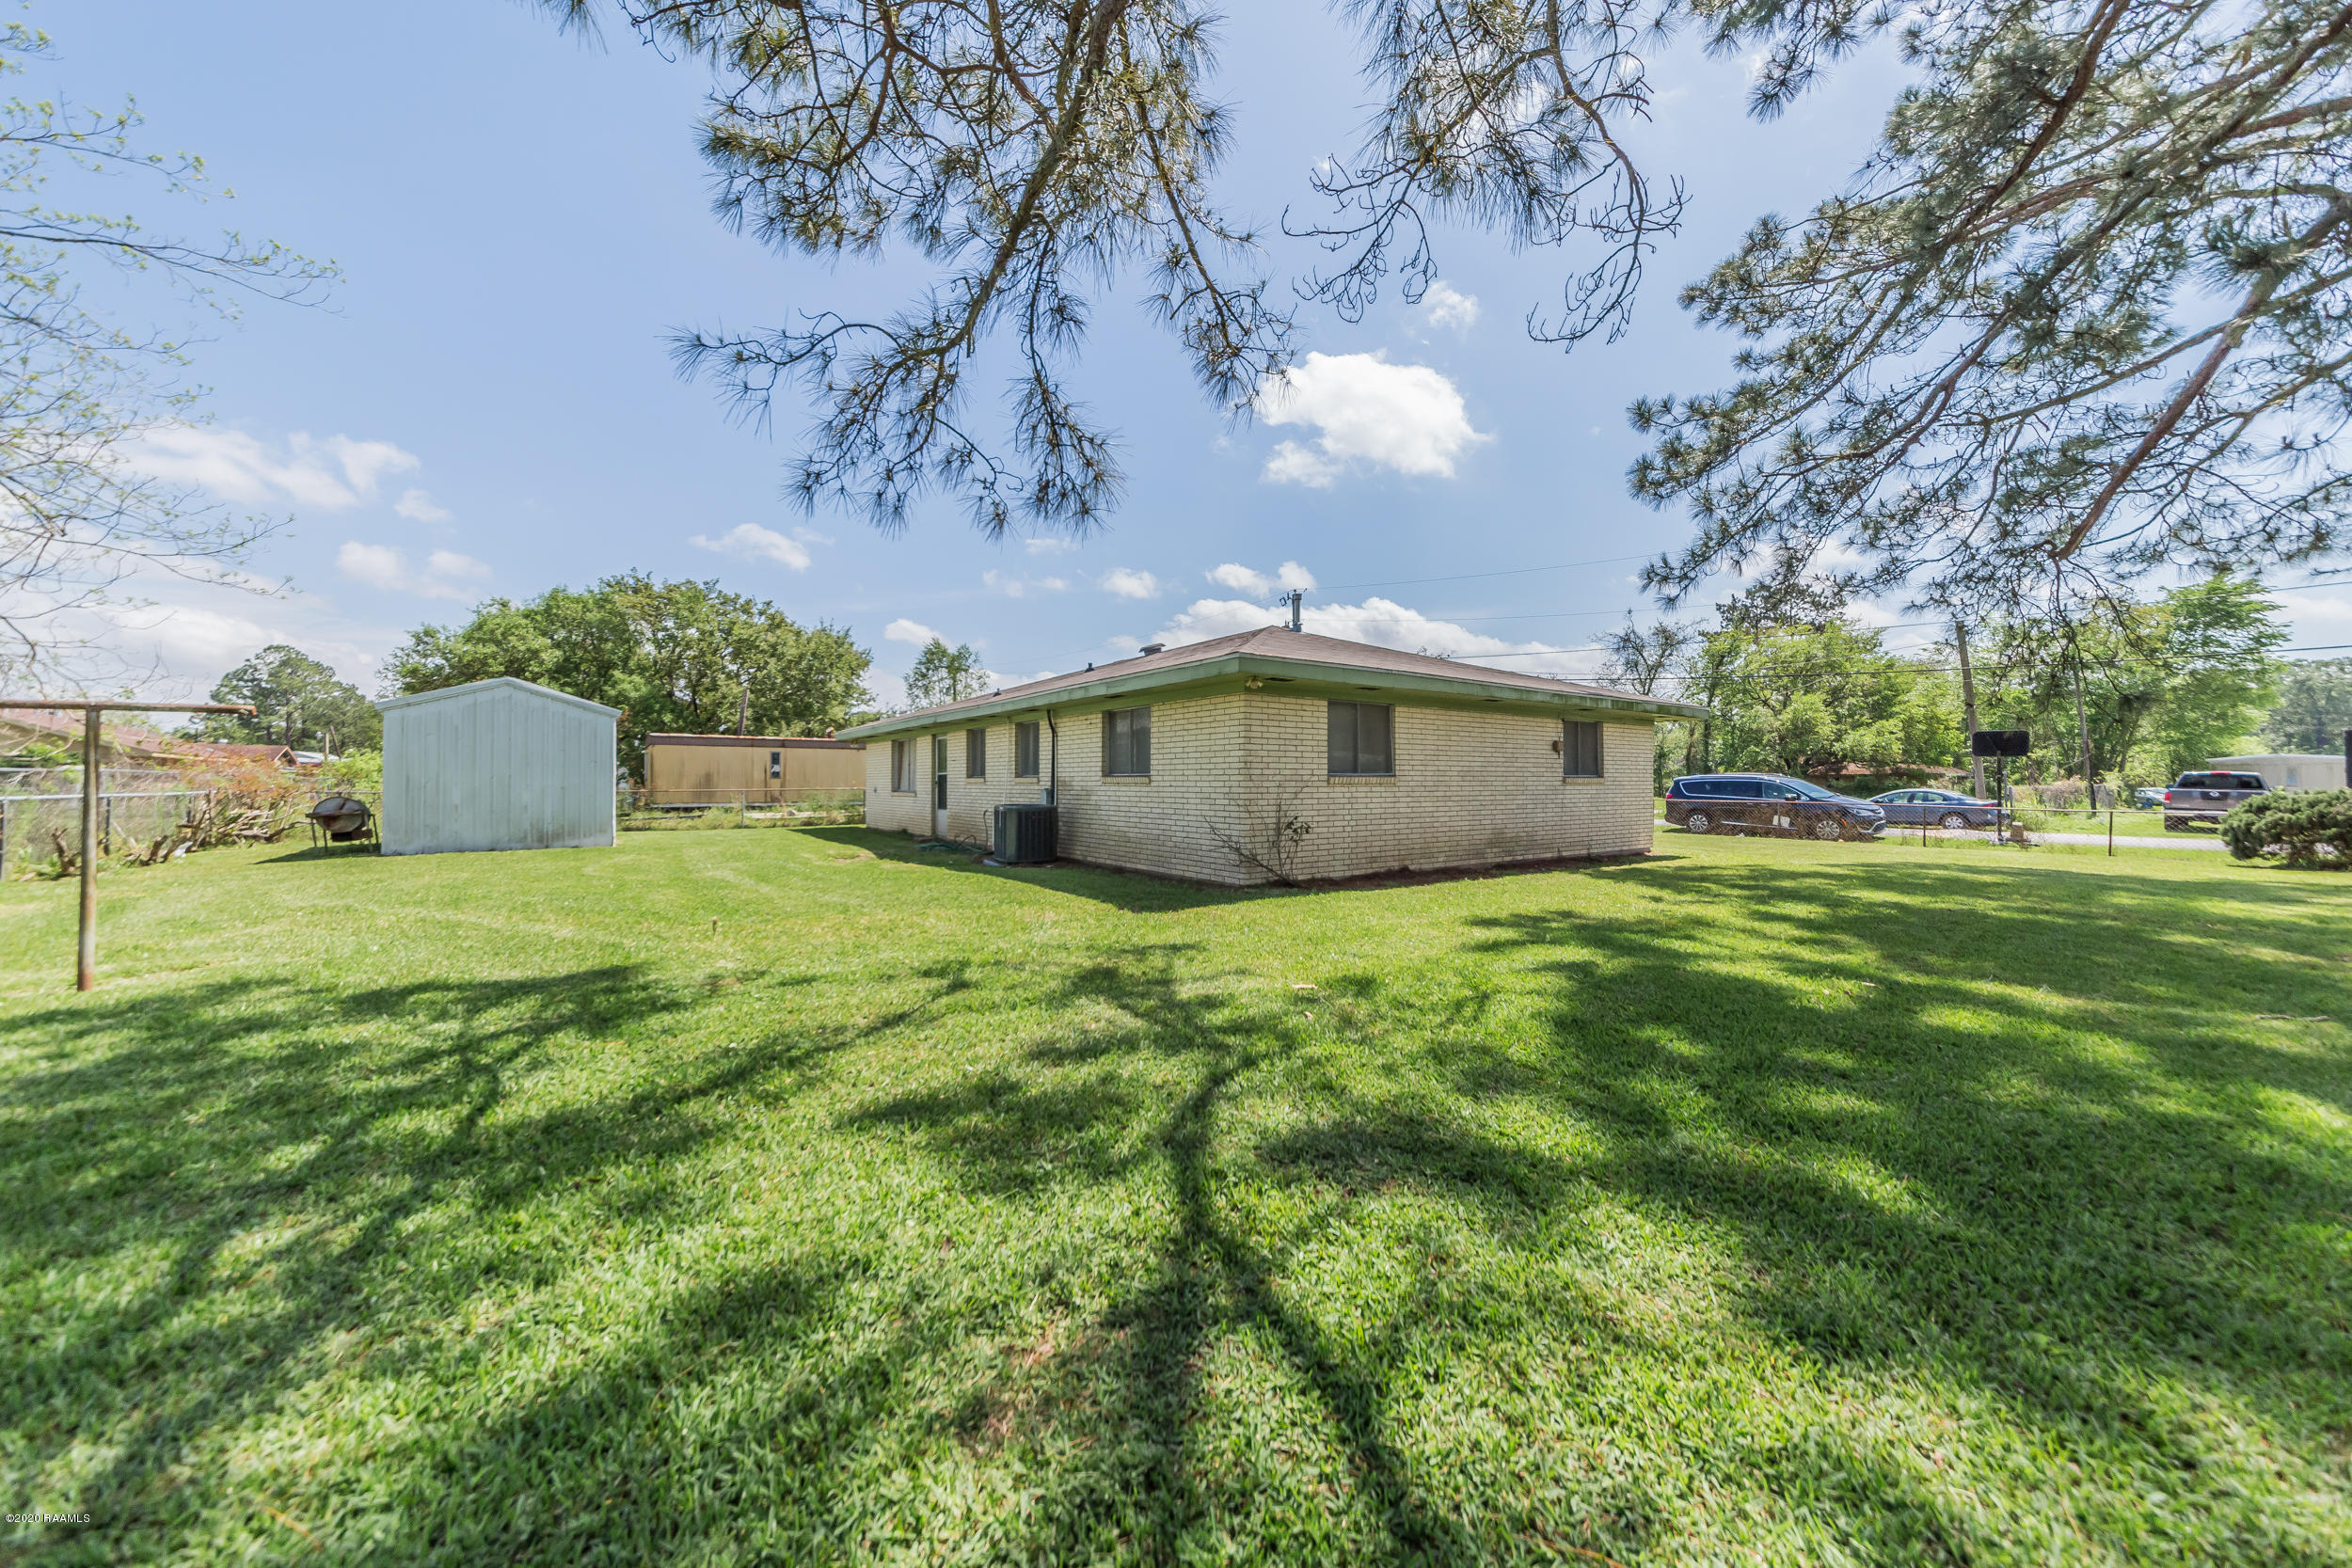 930 Governor Mouton St, St. Martinville, LA 70582 Photo #5